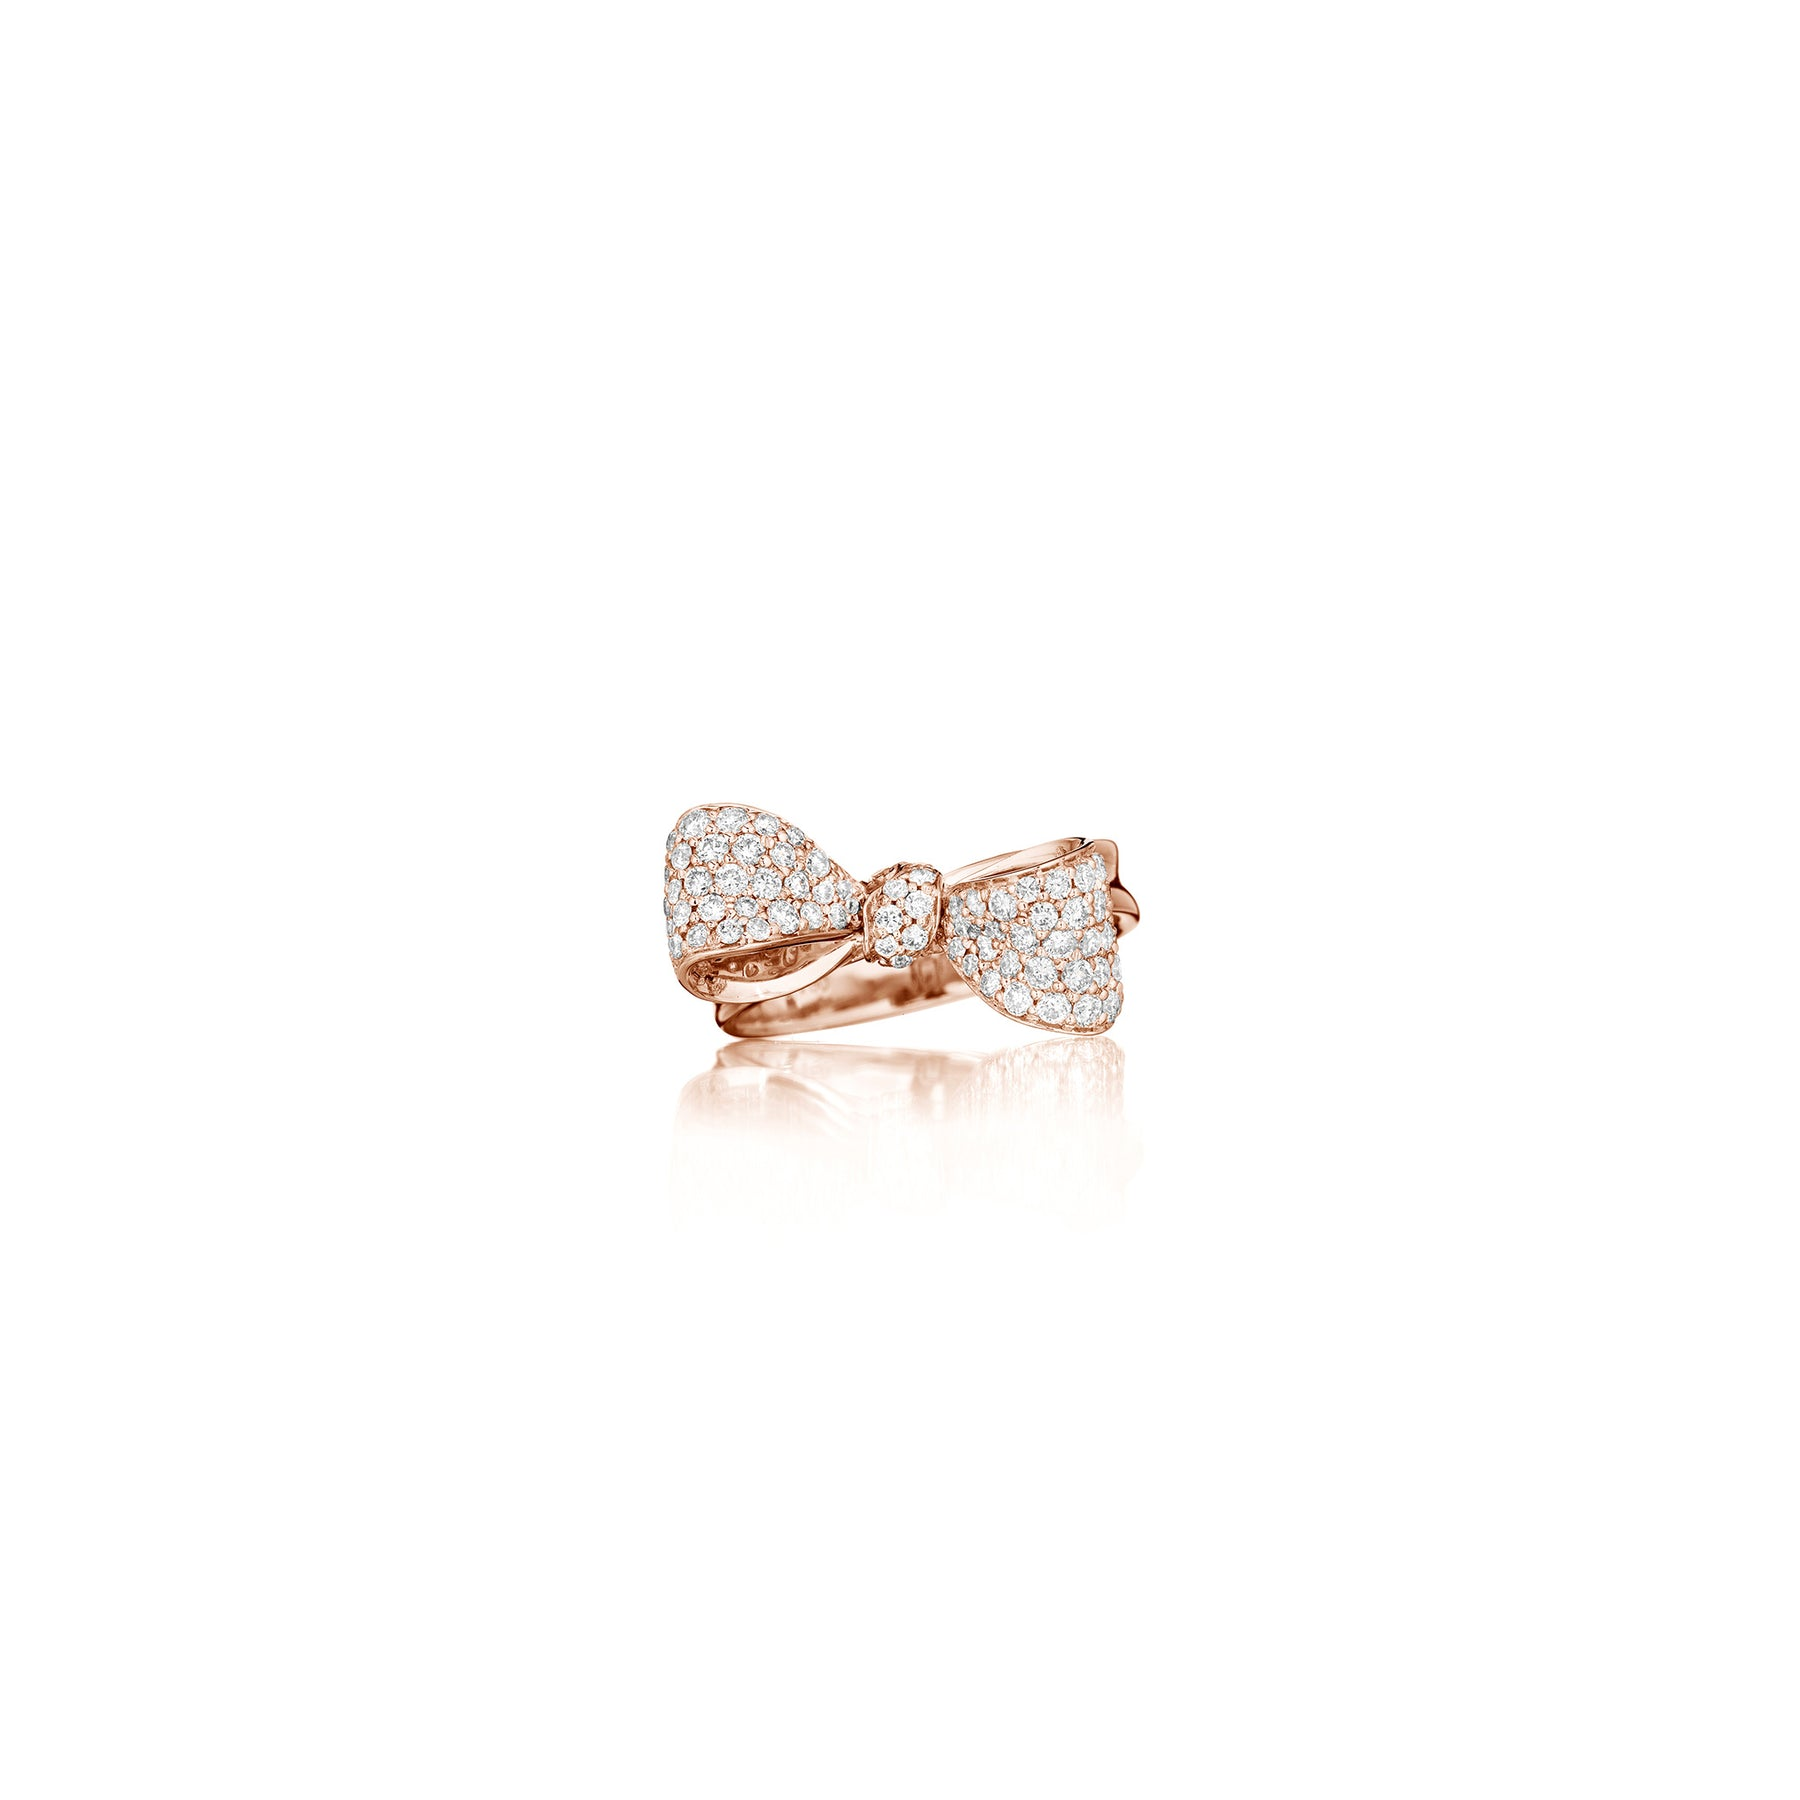 Mimi-So-Bow-Diamond-Ring-Petite_18k Rose Gold